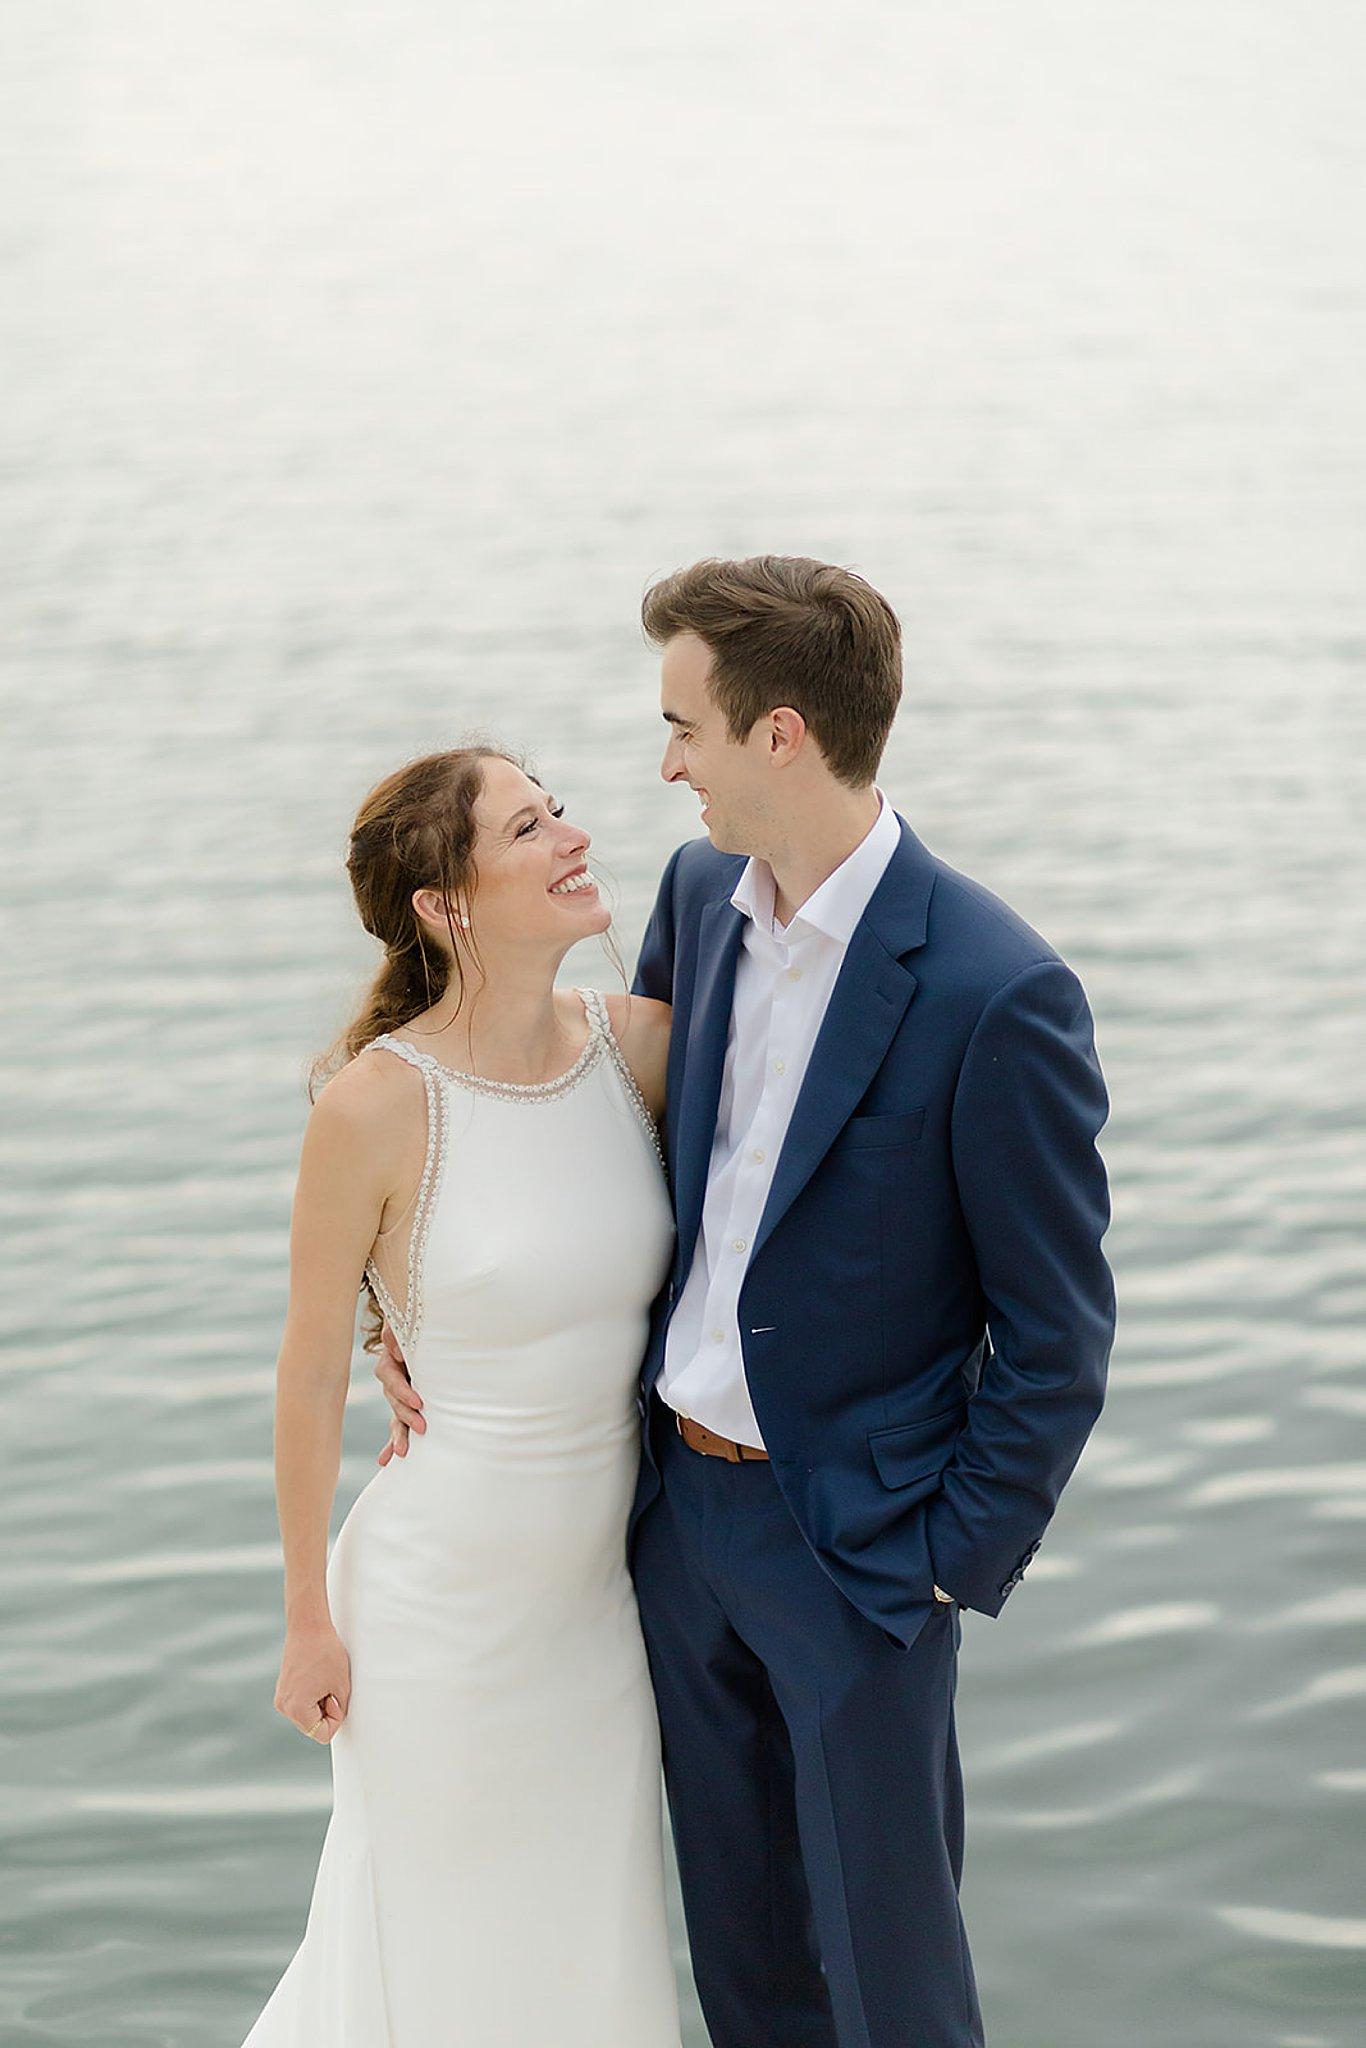 The Reeds at Shelter Haven Wedding Photography by Magdalena Studios KylieChristian 0044